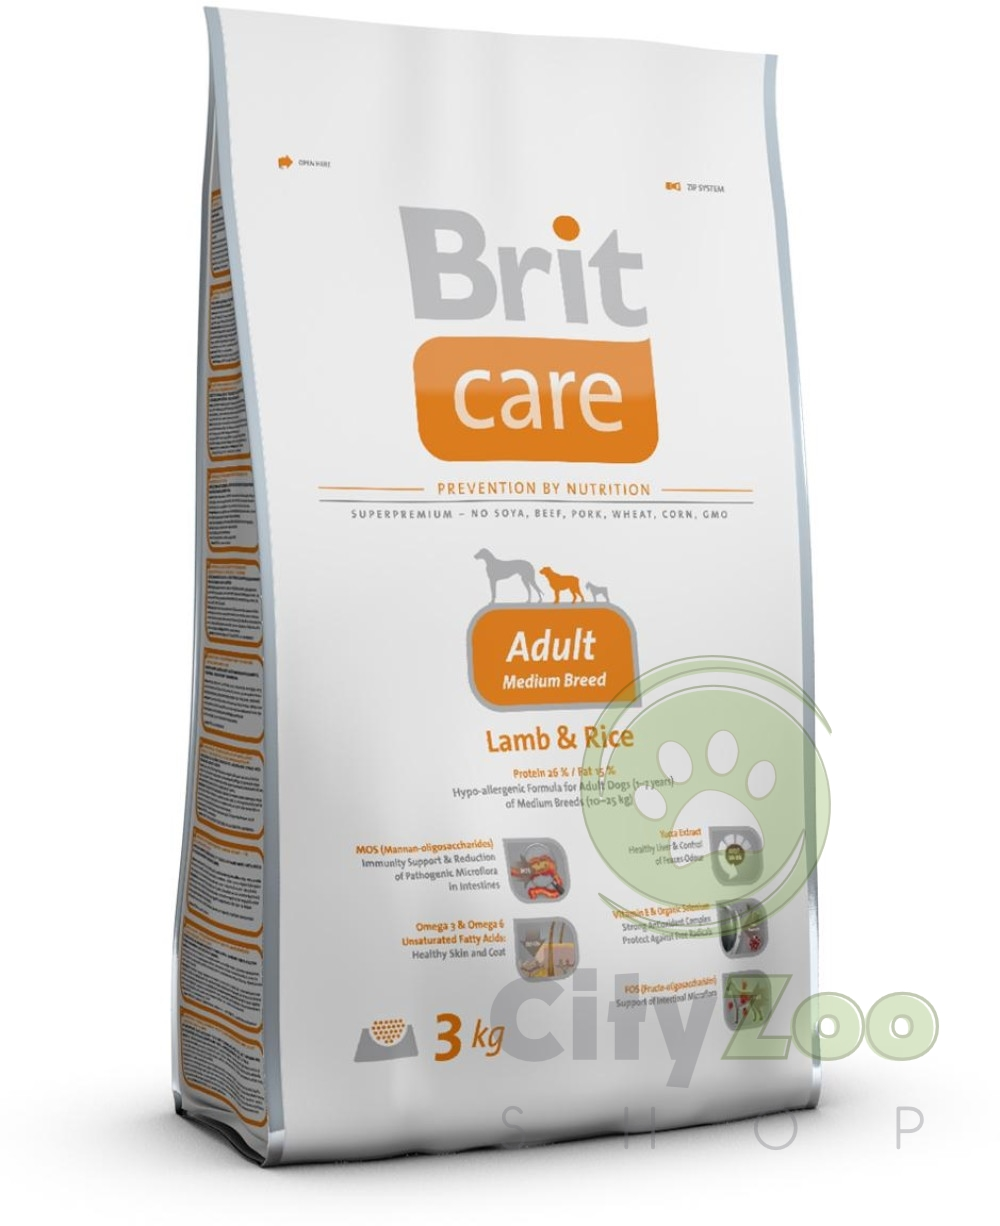 zoo/Brit_Care_Adult_Medium_Breed_Lamb_and_Rice